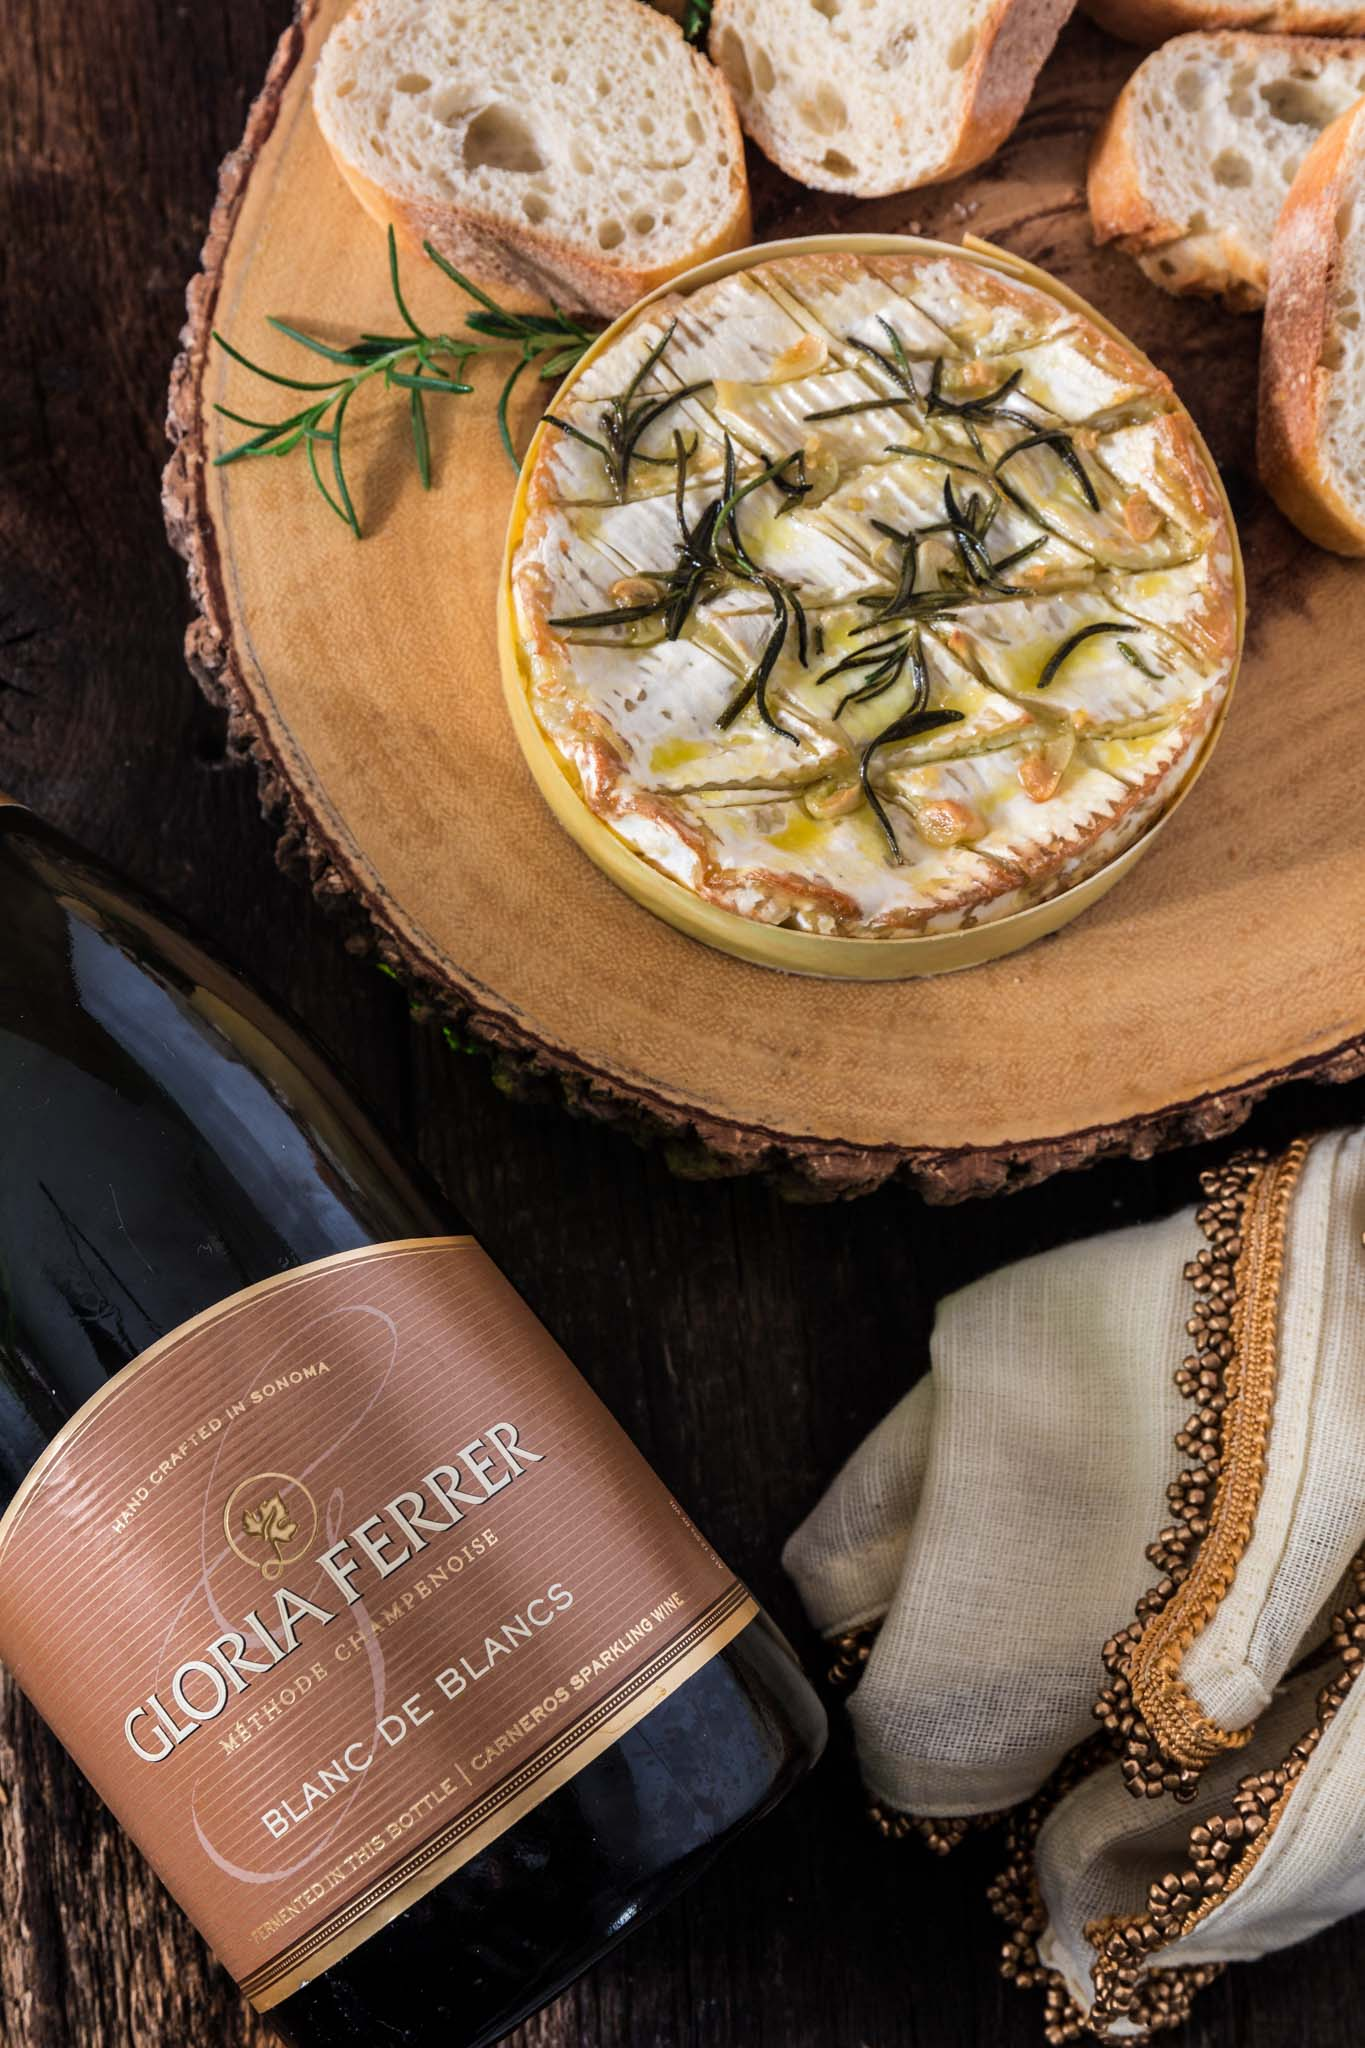 Baked Camembert with Garlic and Rosemary | www.oliviascuisine.com | A gooey and fragrant Baked Camembert is always a must at my dinner parties. This version with garlic and rosemary is one of my favorites and pairs greatly with a glass of bubbly!